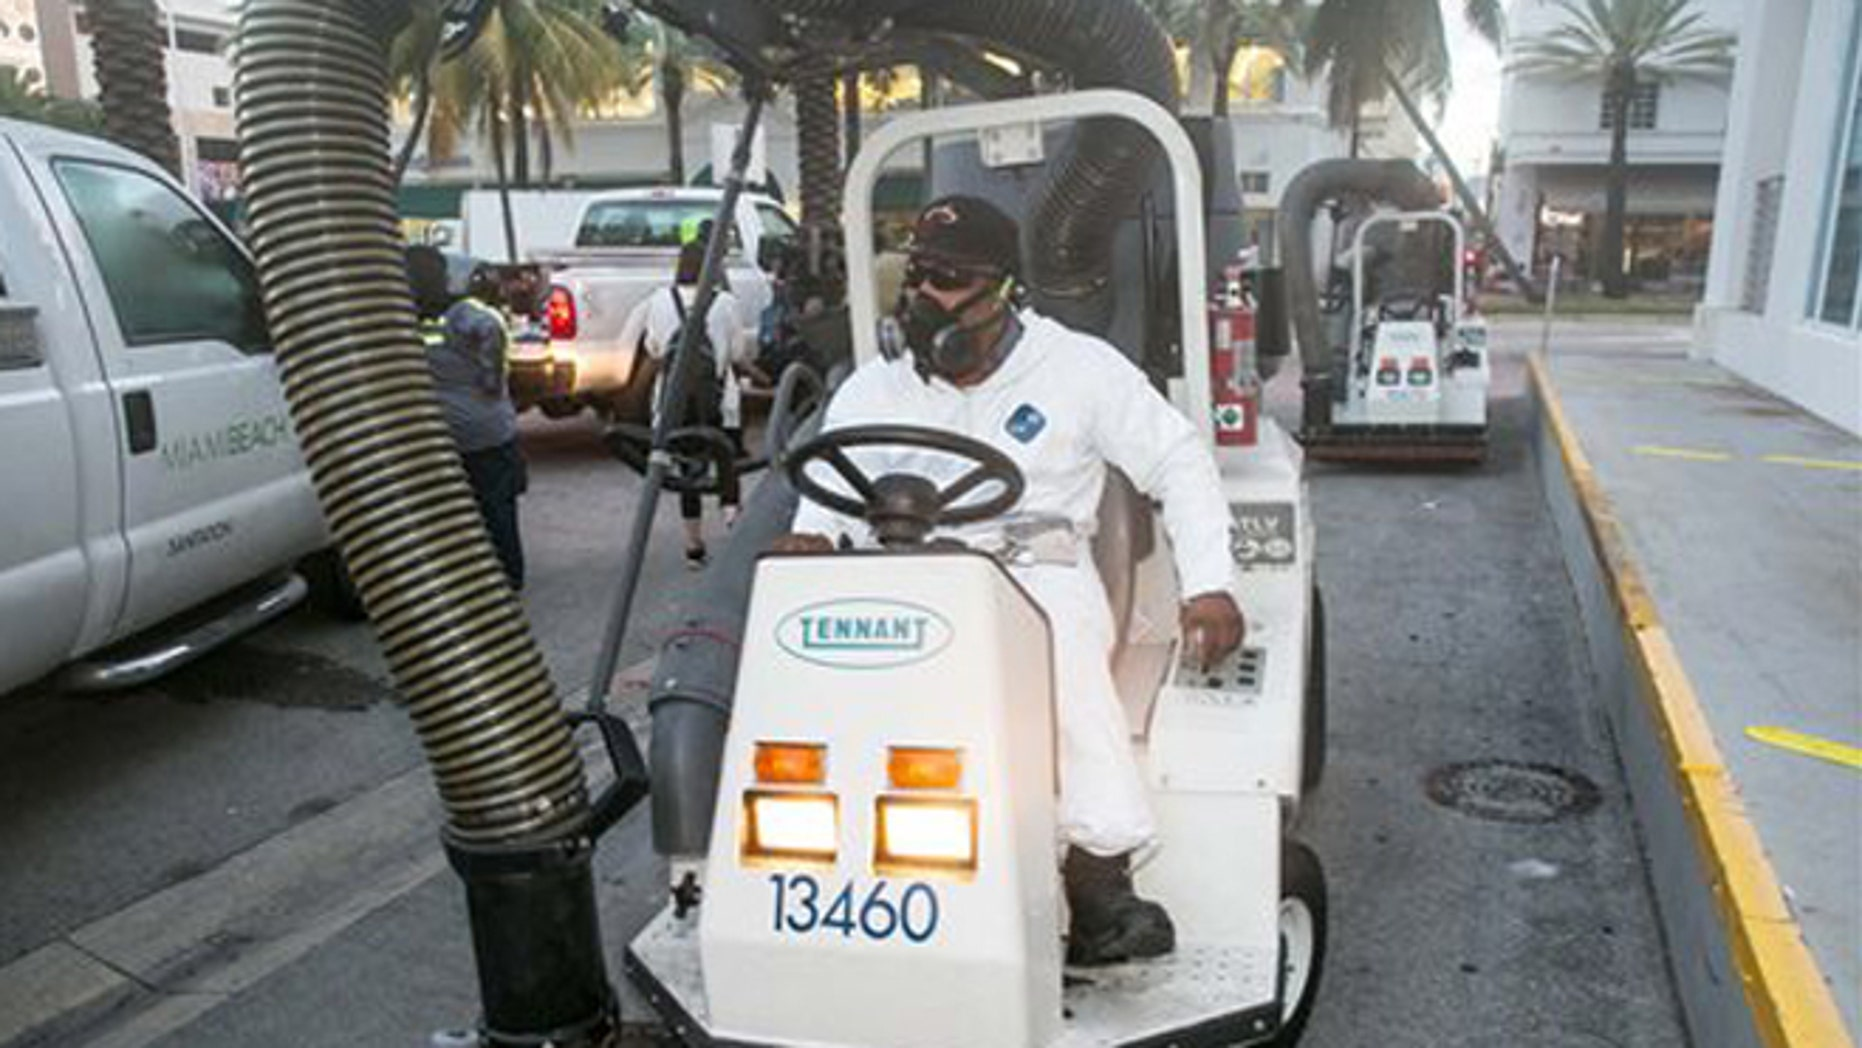 A City of Miami Beach Sanitation worker gets ready to clean the alleyways of South Beach, sucking up still waters and debris with a mobile vacuum, Friday, Aug. 19, 2016, Miami Beach, Fla., as part of the city's Zika clean-up. (C.M. Guerrero/El Nuevo Herald via AP)